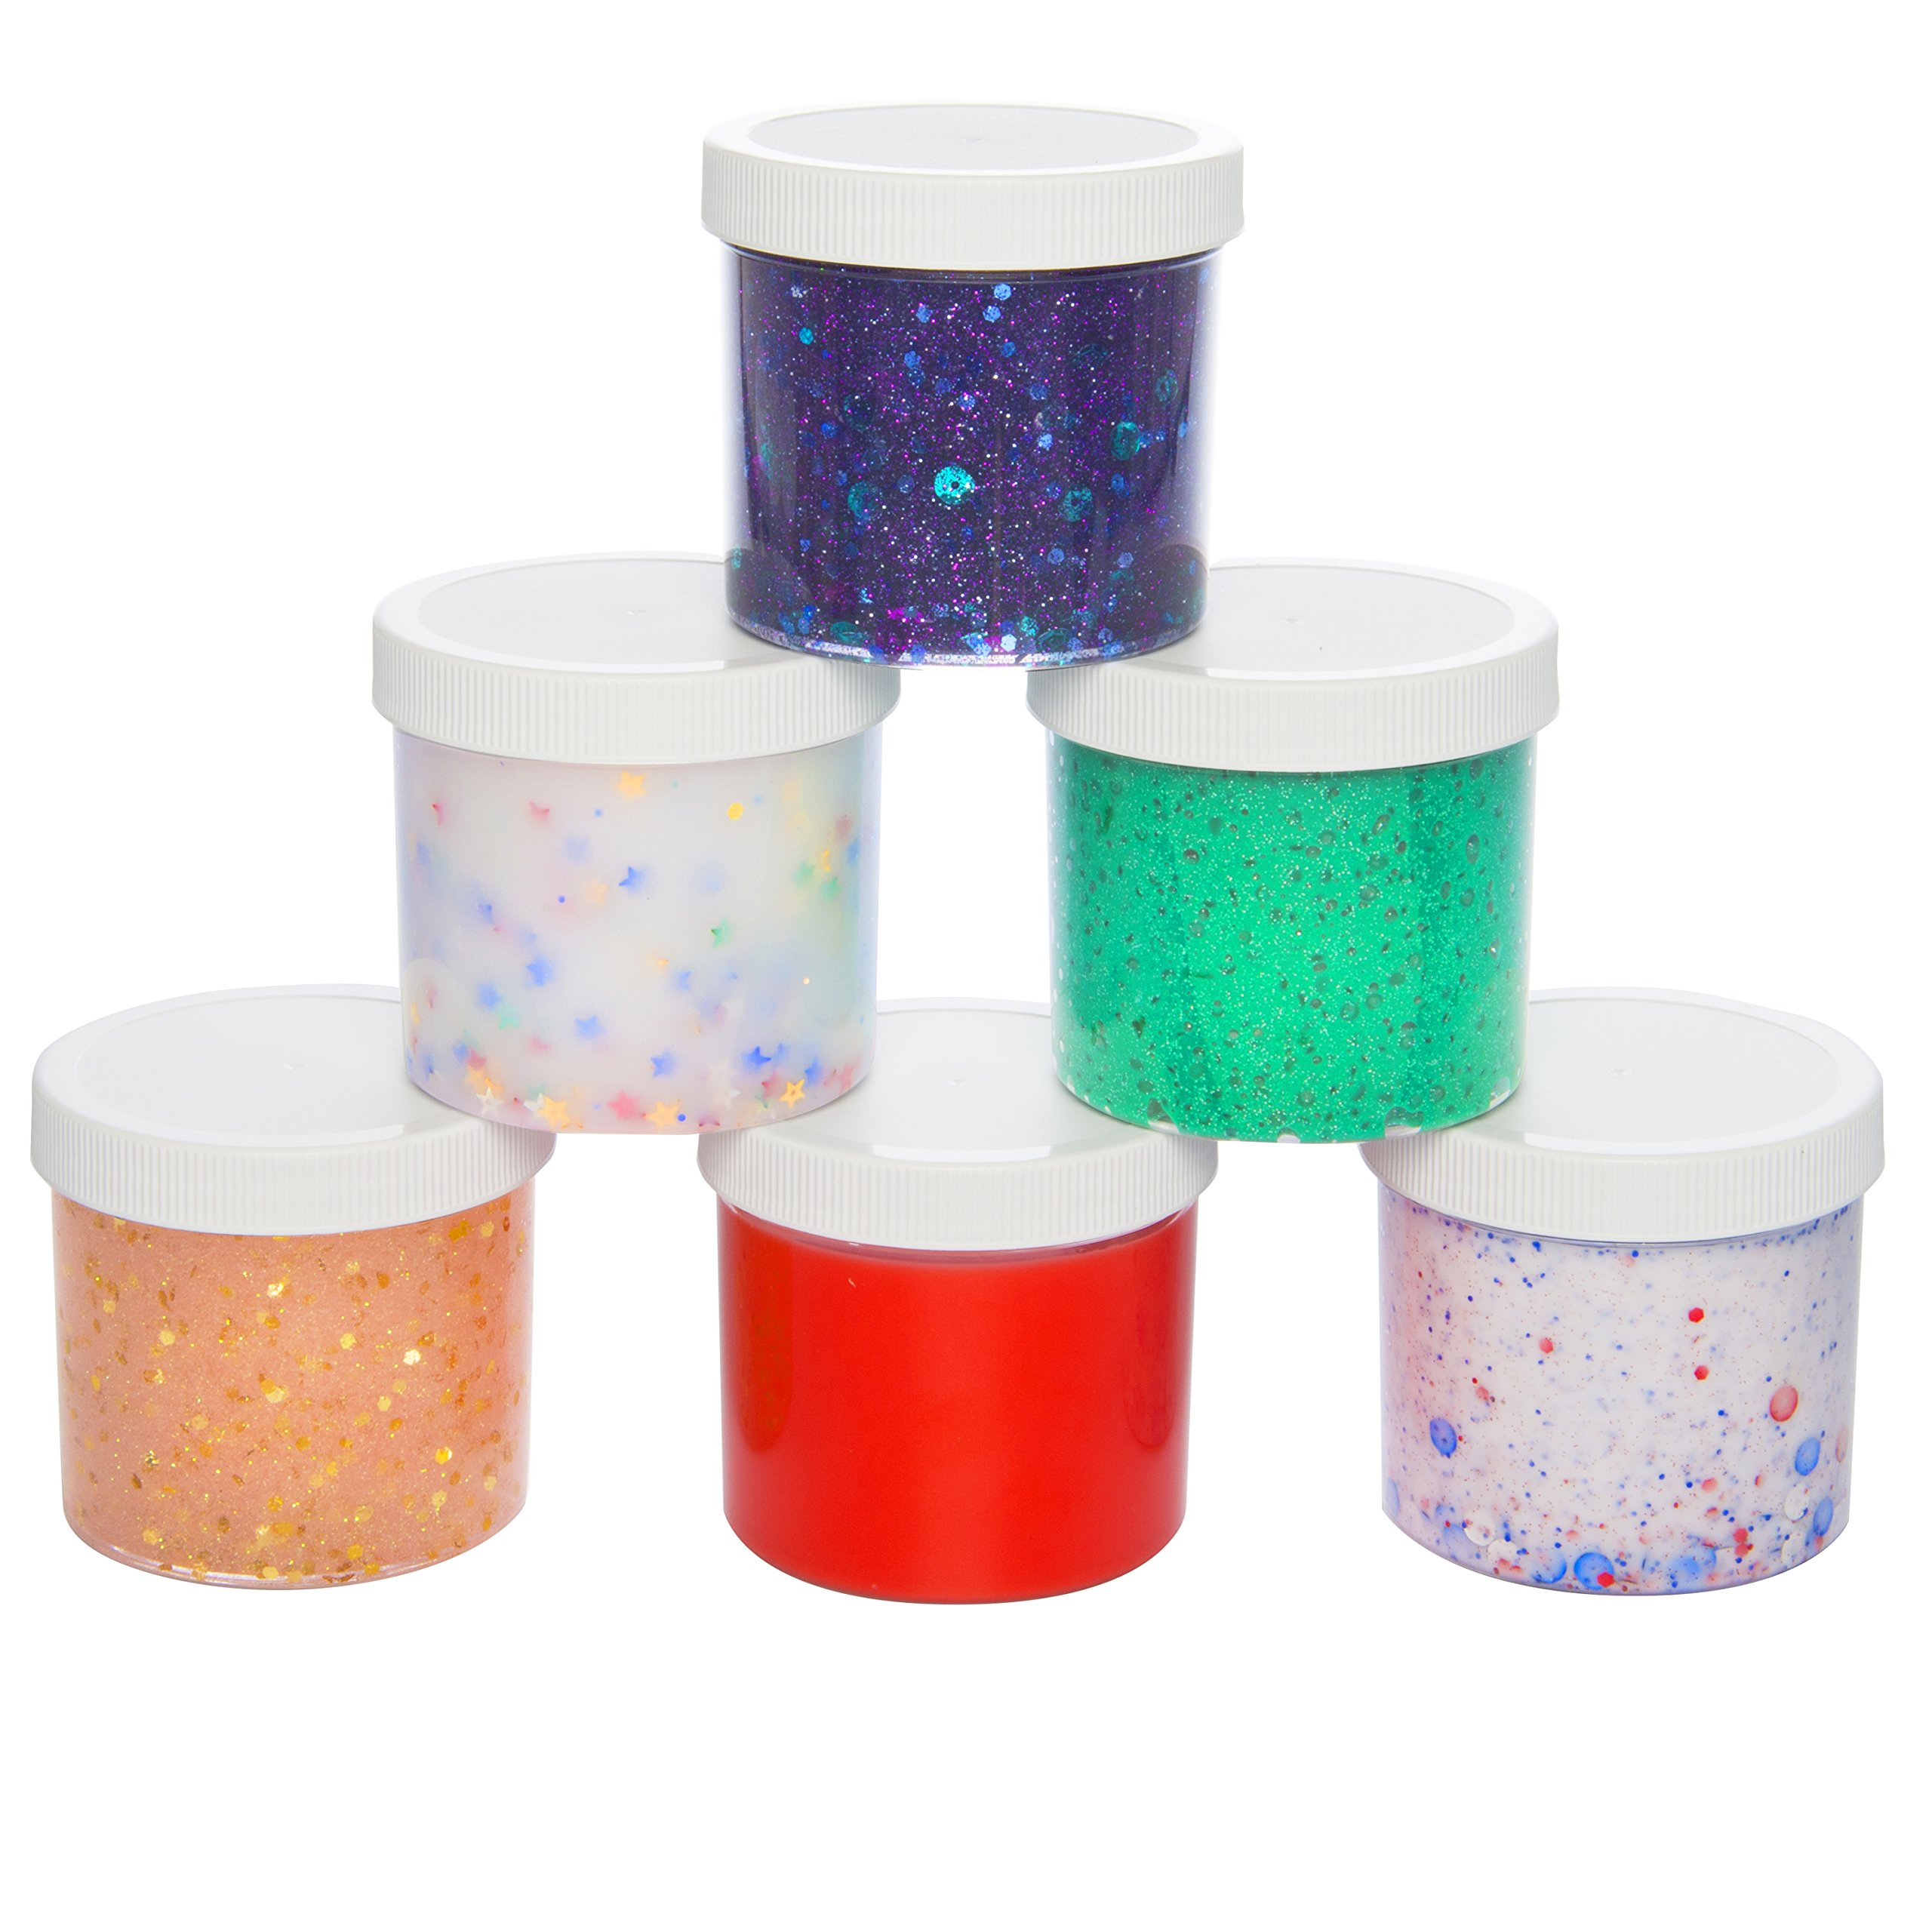 Slime Storage Jars 12oz (6 Pack) - Maddie Rae's Clear Containers For All Your Glue Putty Making